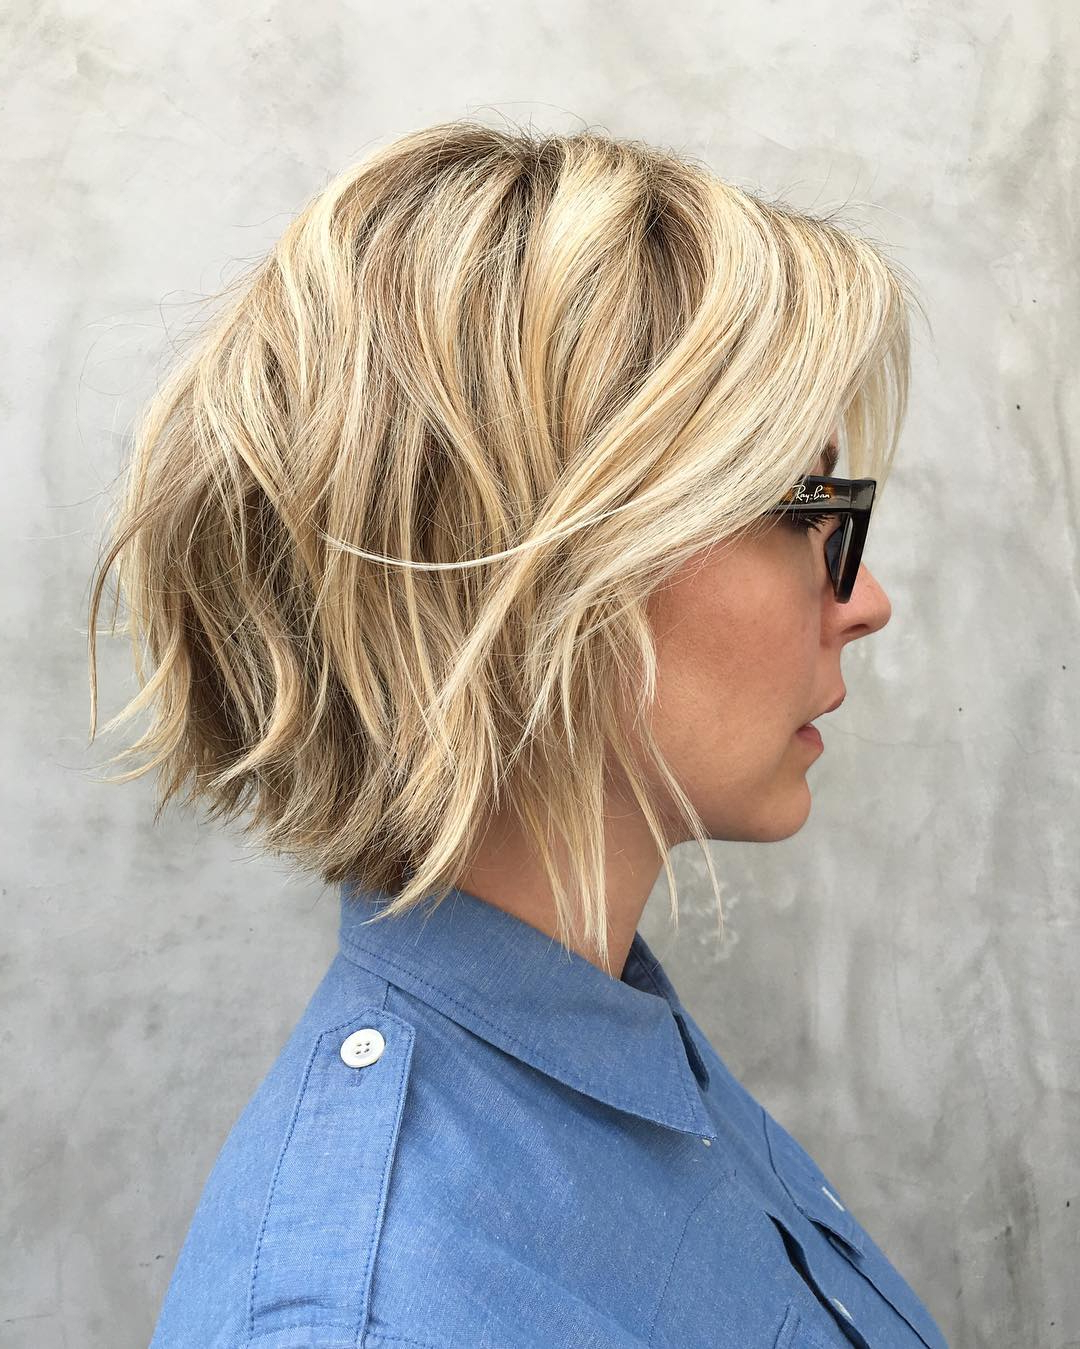 Shag Haircuts And Hairstyles In 2019 — Therighthairstyles Within Fashionable Blonde Shag Haircuts With Layers (View 16 of 20)